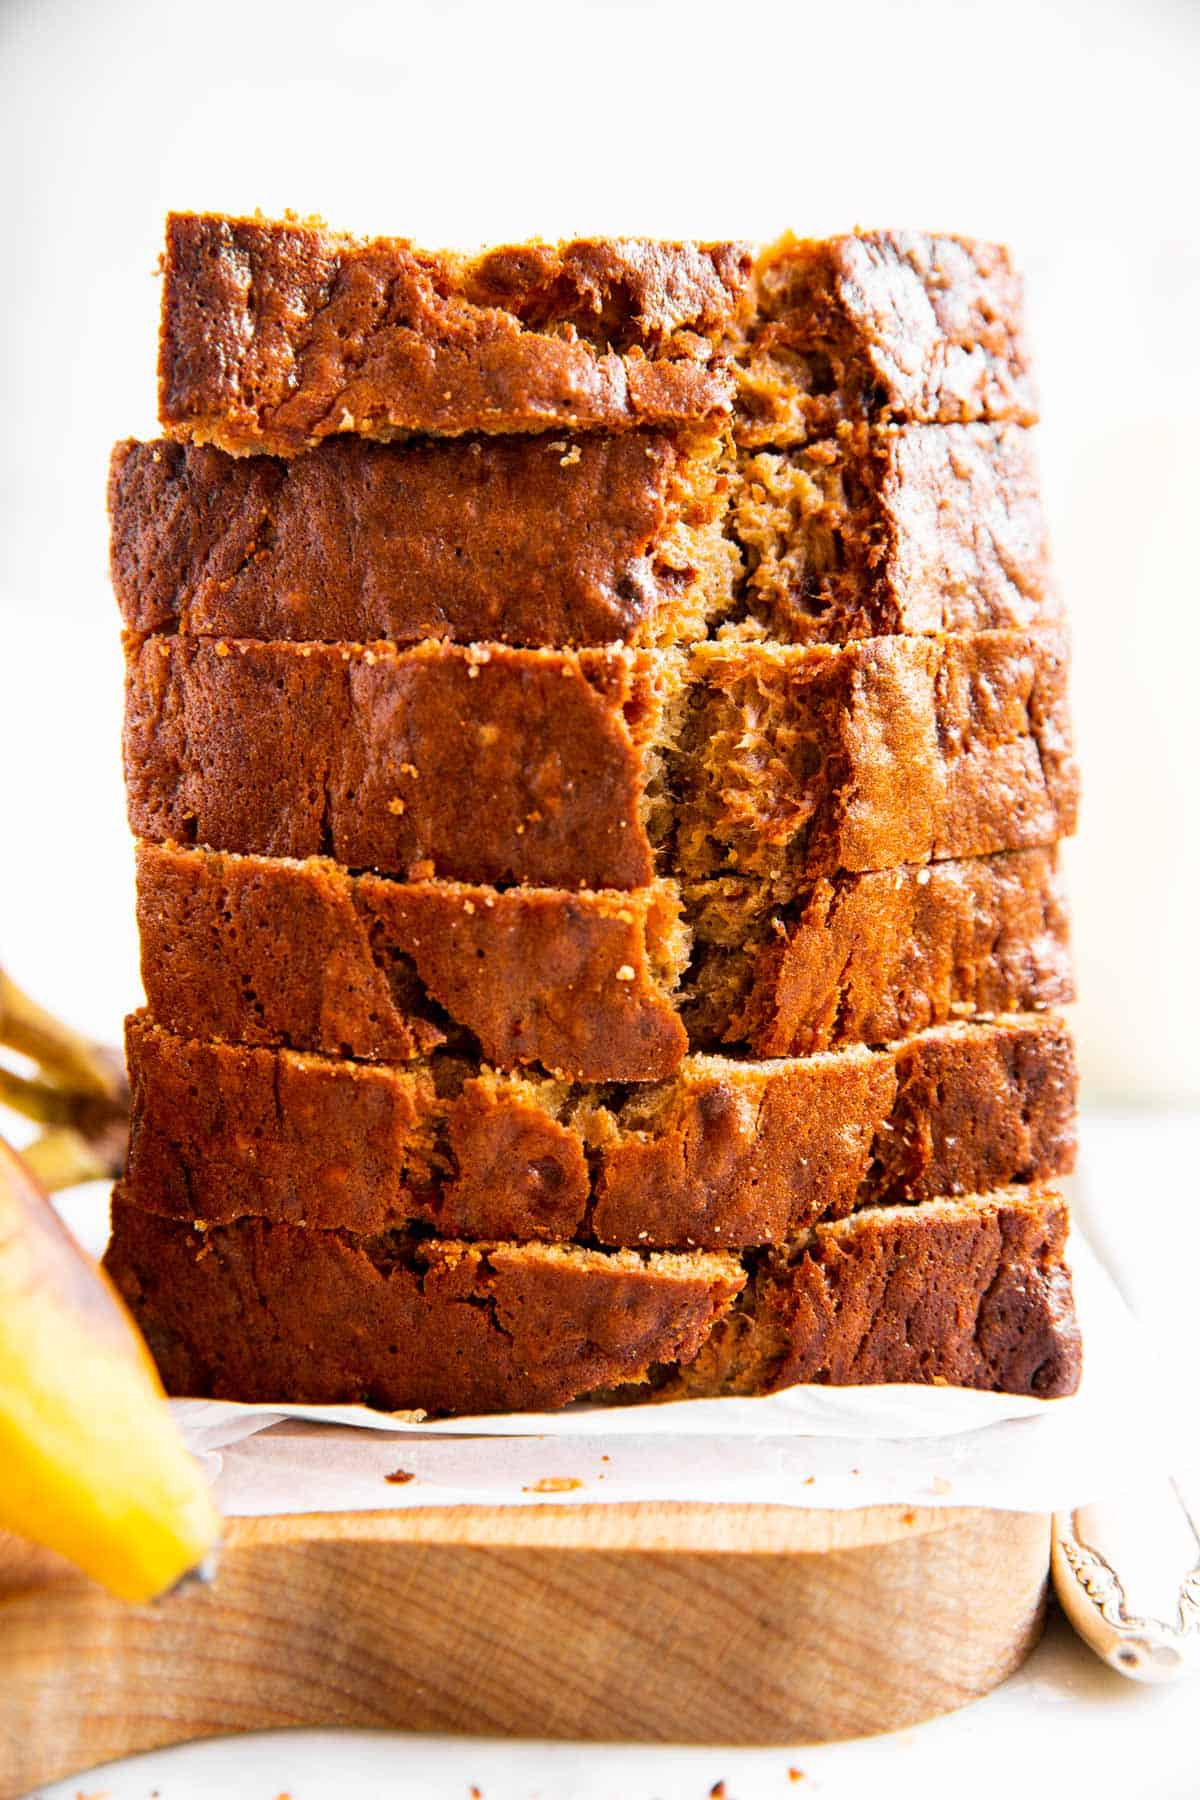 stack of sliced banana bread on wooden board